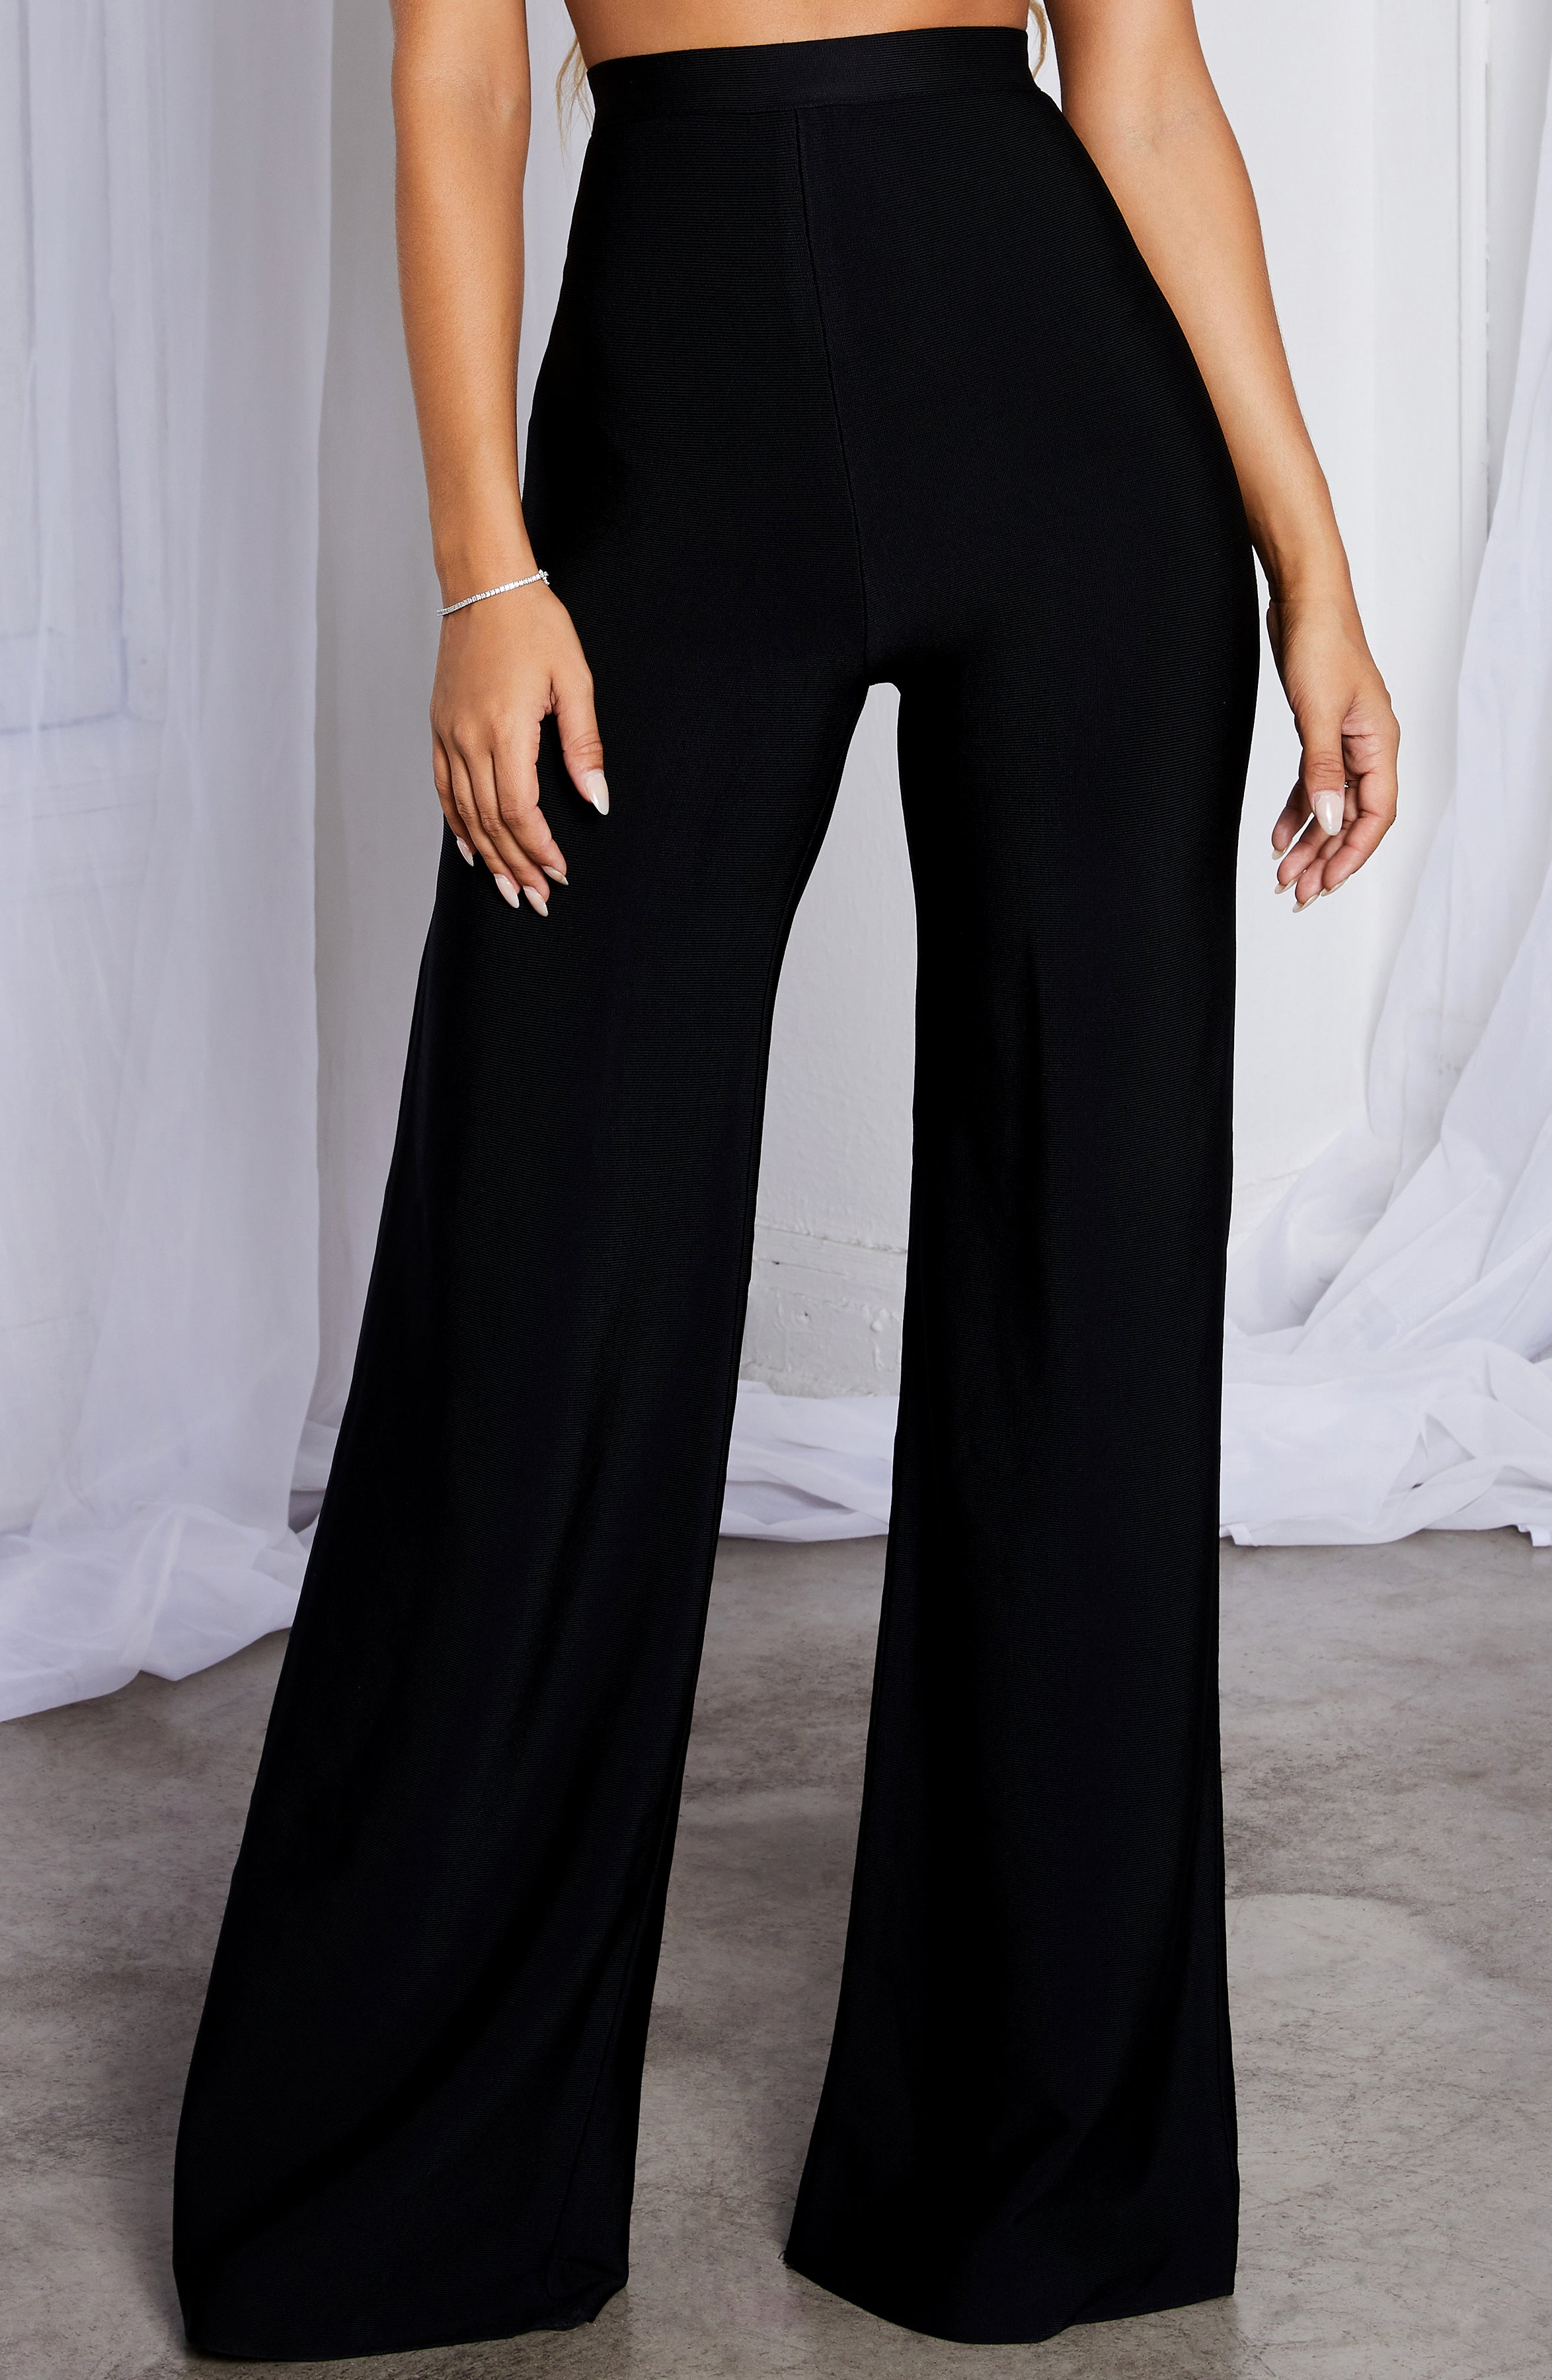 Raven Bandage Pants - Black